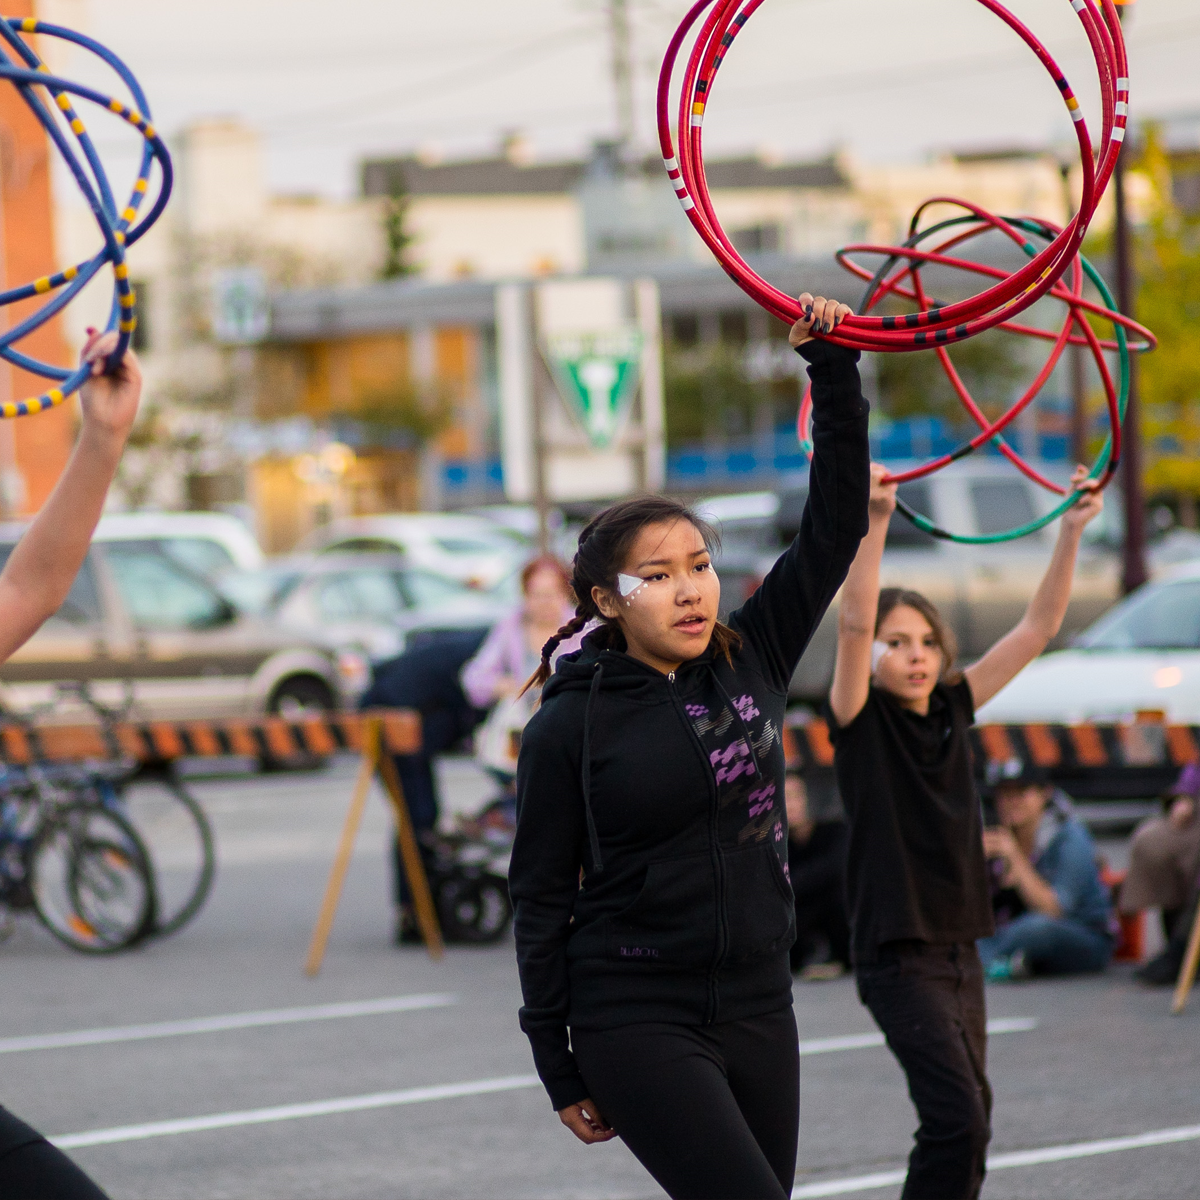 A hoop dance performed by Indigenous youth.